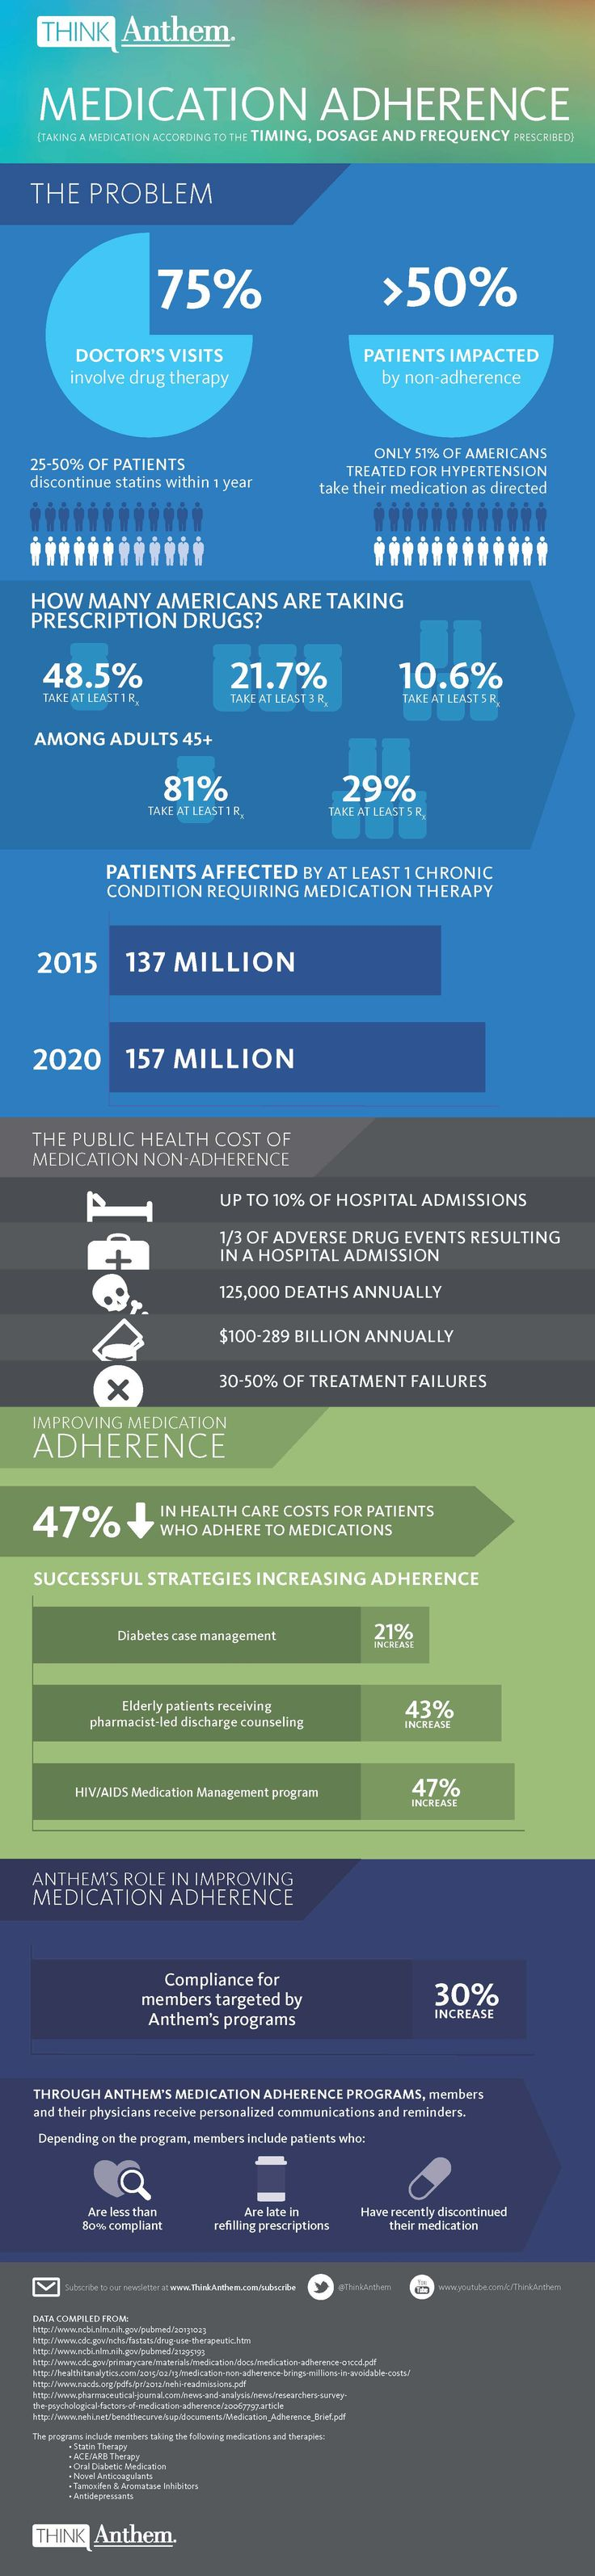 Infographic: Medication Adherence «  Healthcare Intelligence Network